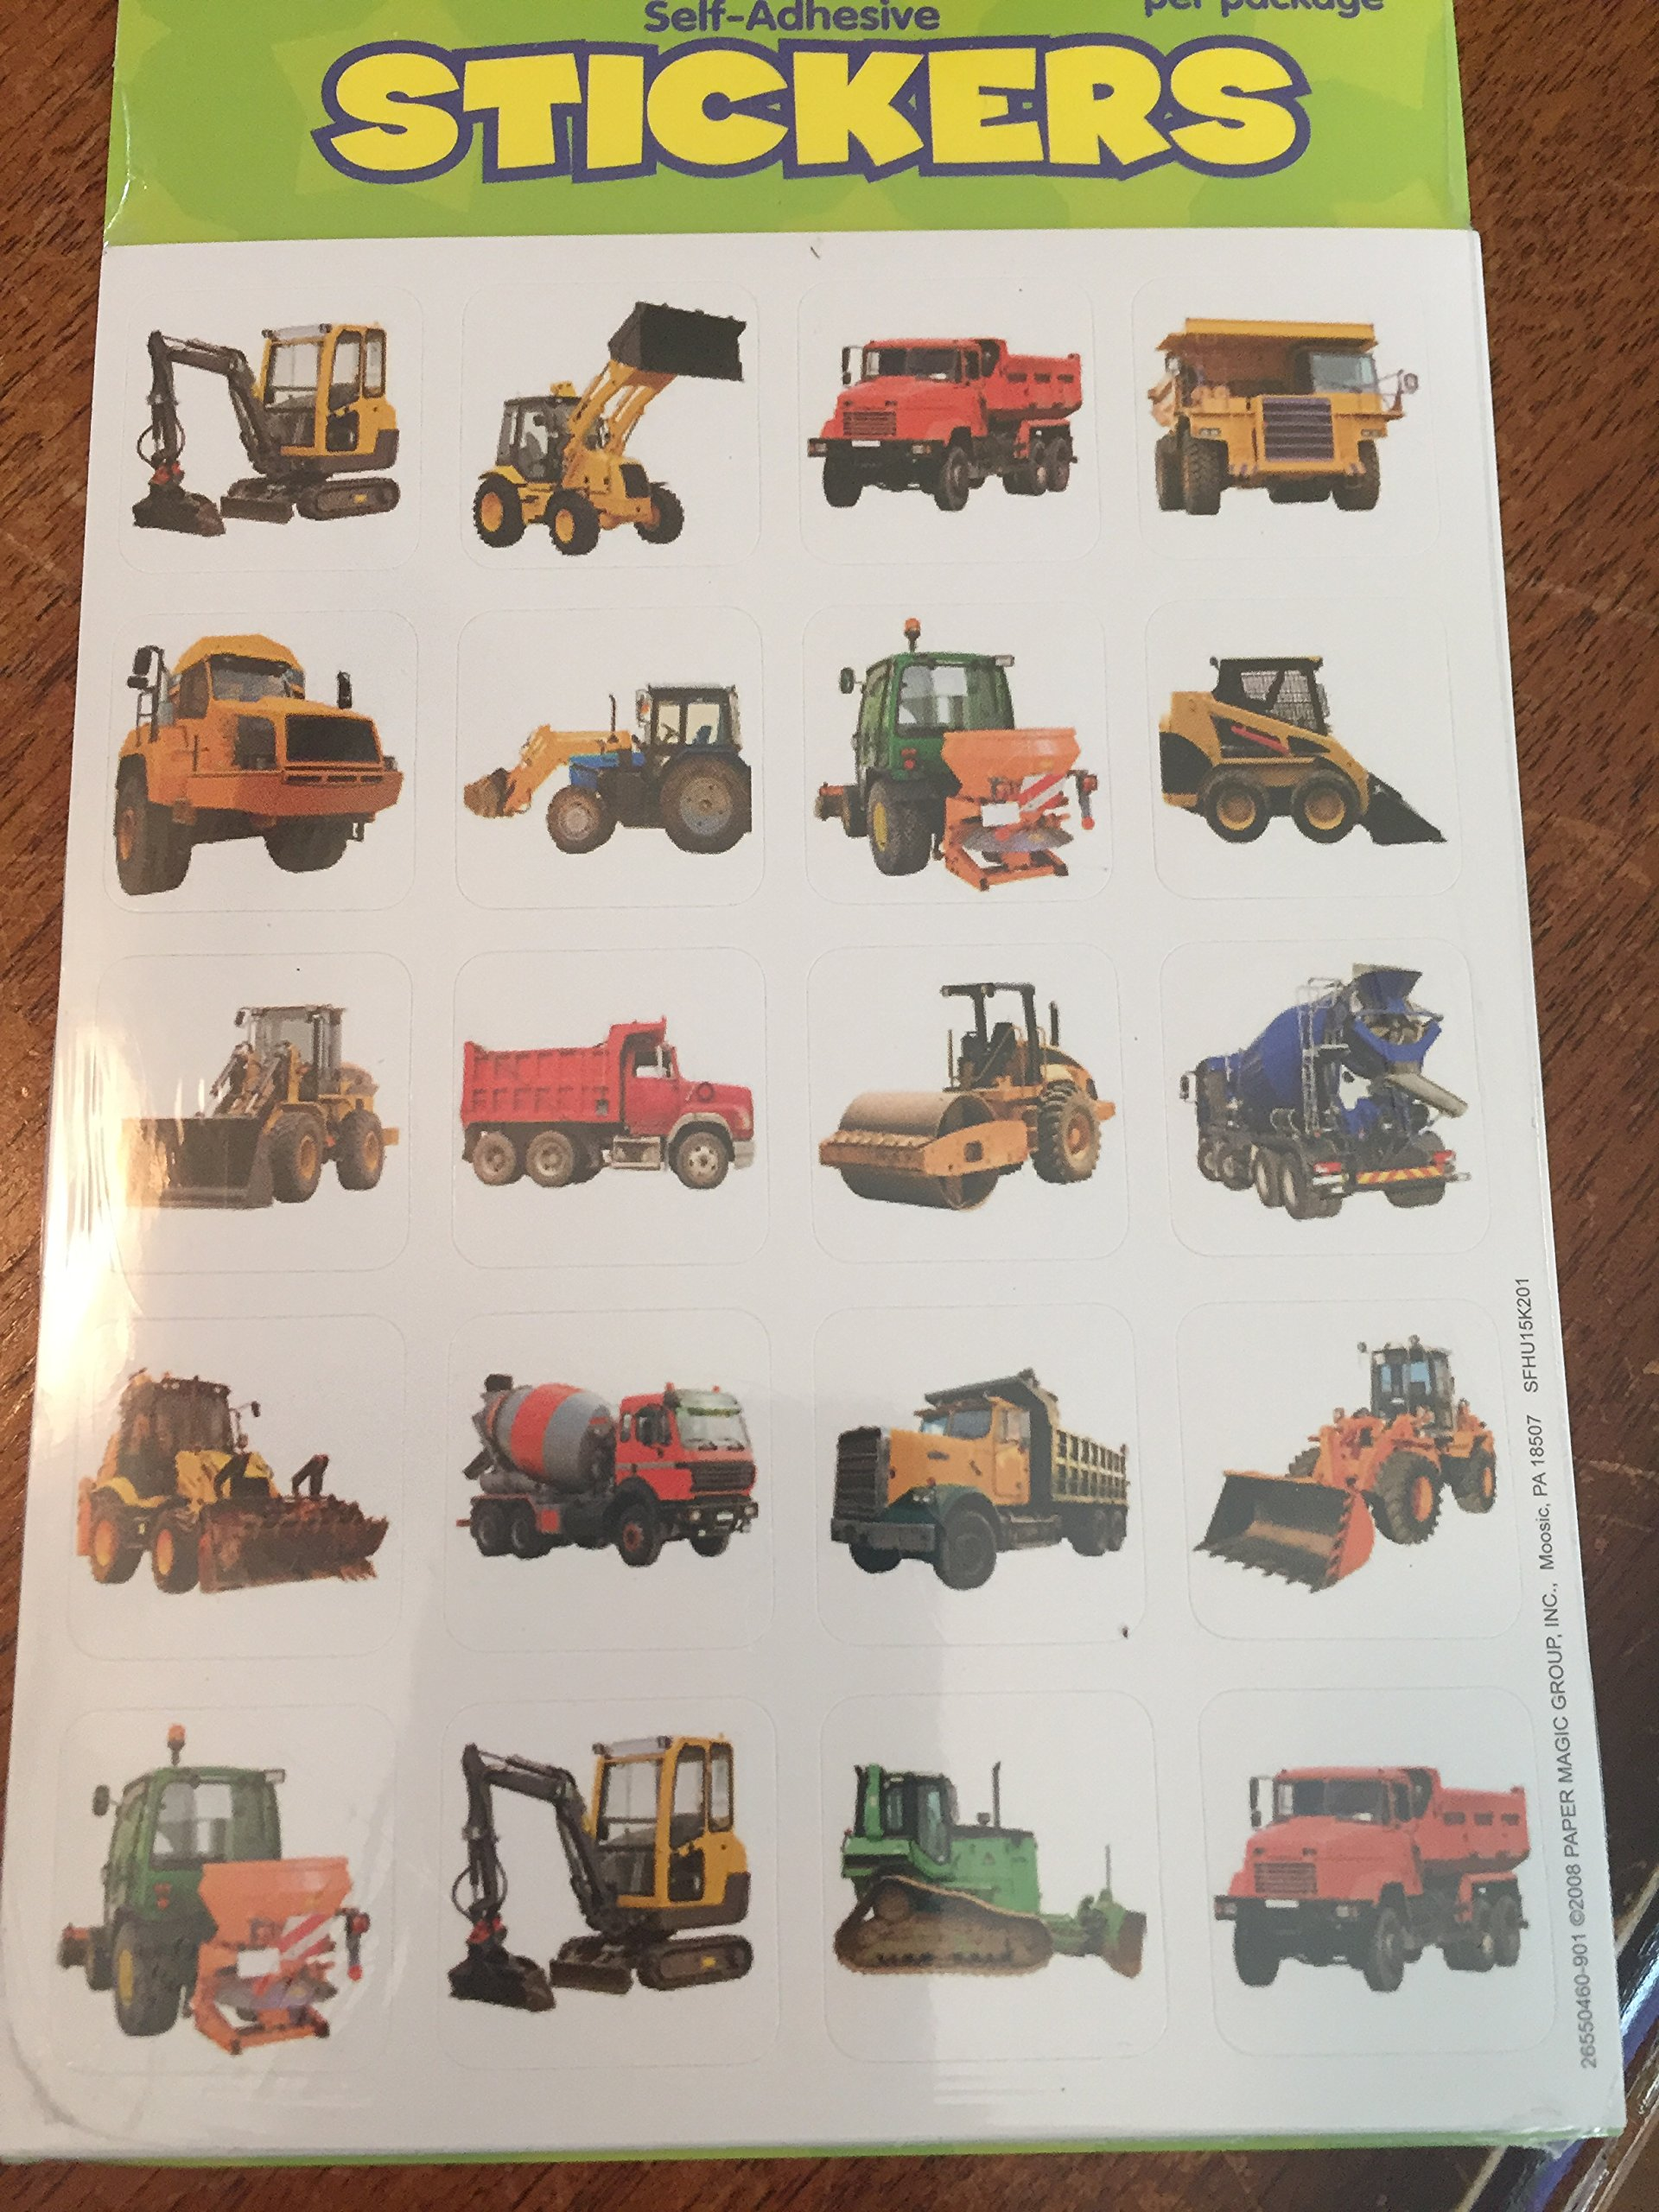 240 CONSTRUCTION Vehicle TRUCK Photo Stickers - Backhoe BULLDOZER Dump Truck LOADER - Cement Mixer - Teacher Motivational Rewards EDUCATION Classroom Party Favors